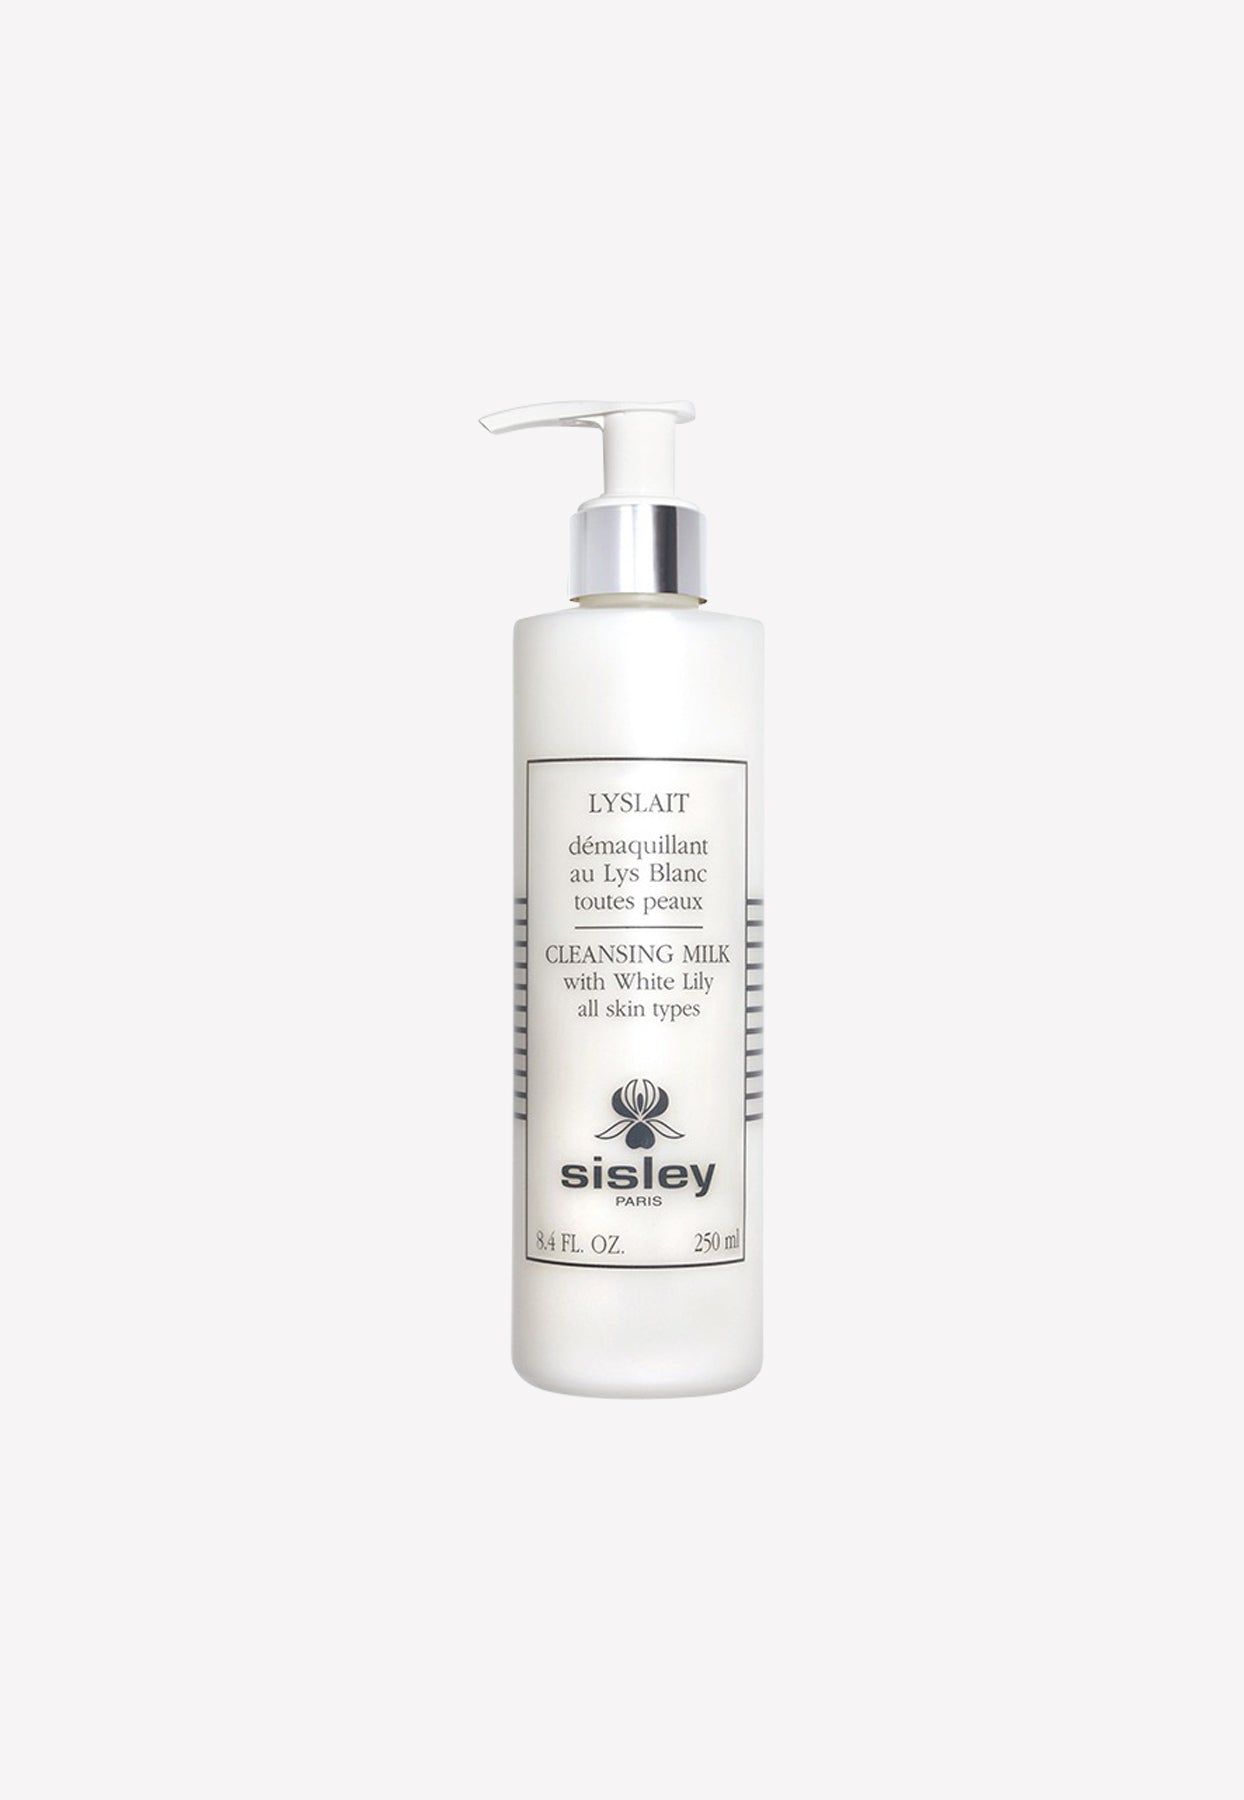 Sisley Paris Lyslait Make-up Remover Milk With In White